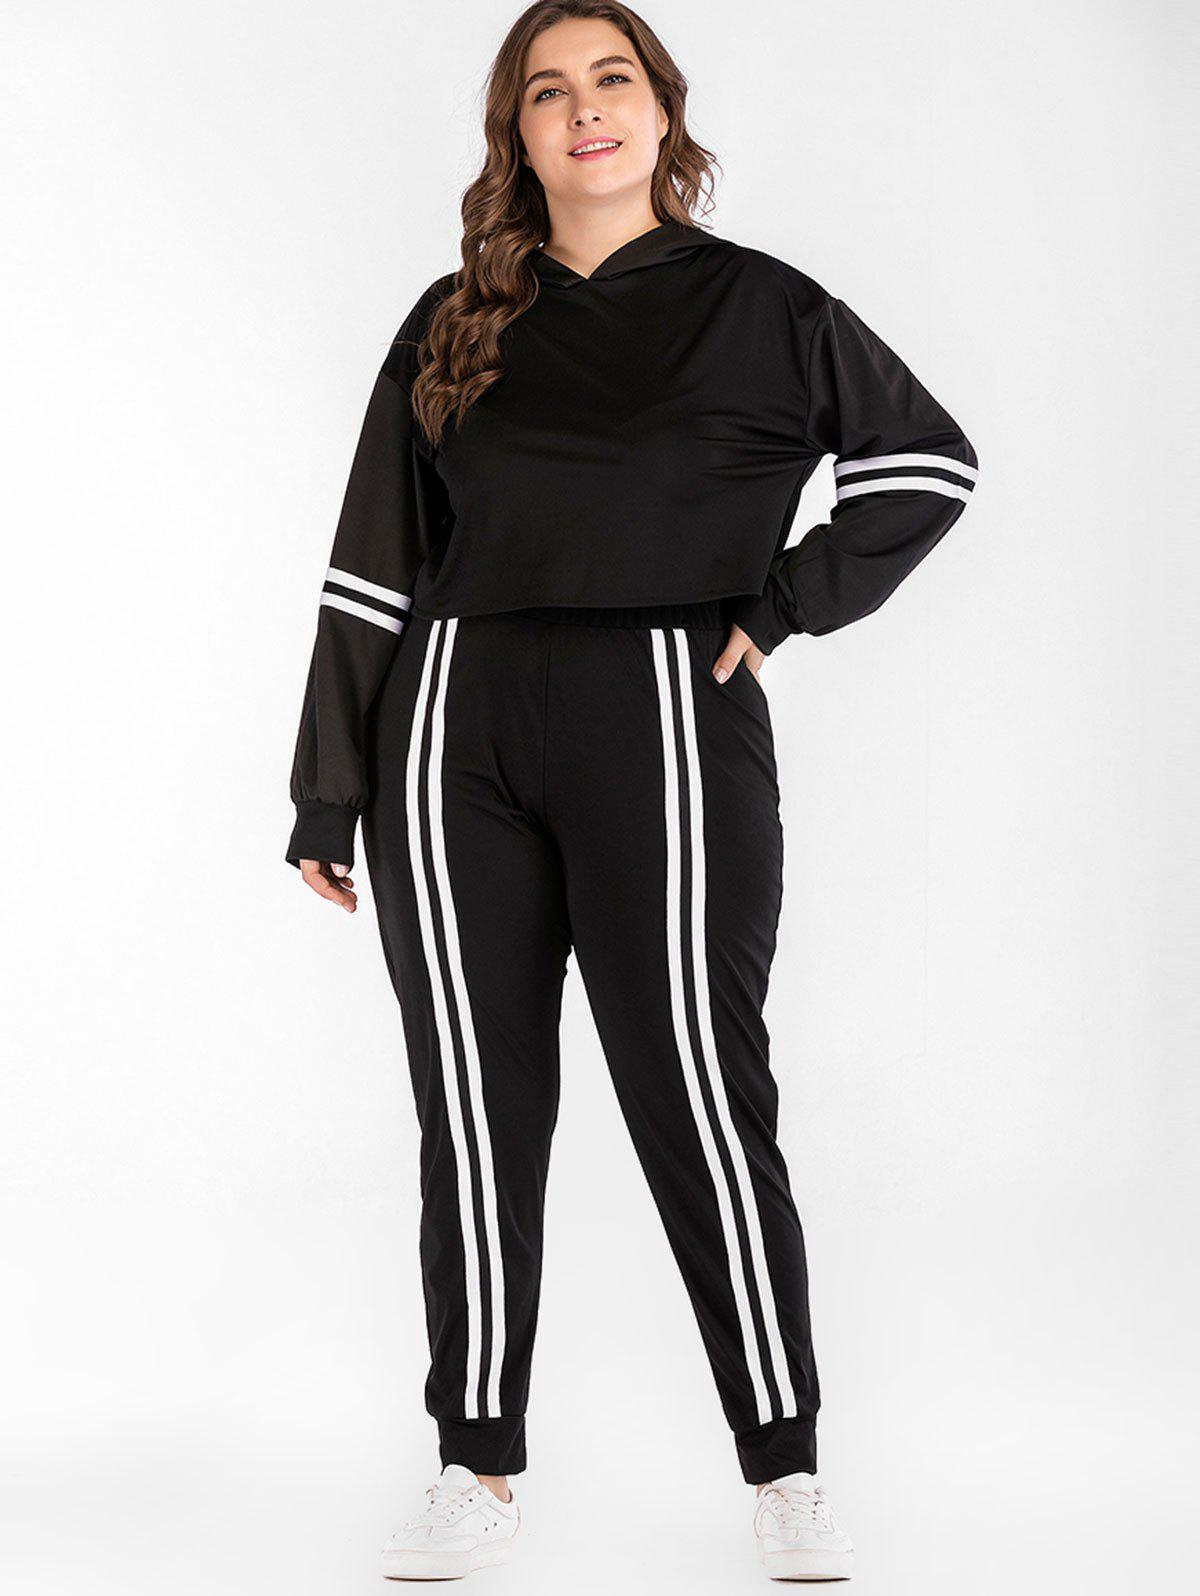 New Long Sleeve Hoodie and Striped Plus Size Pants